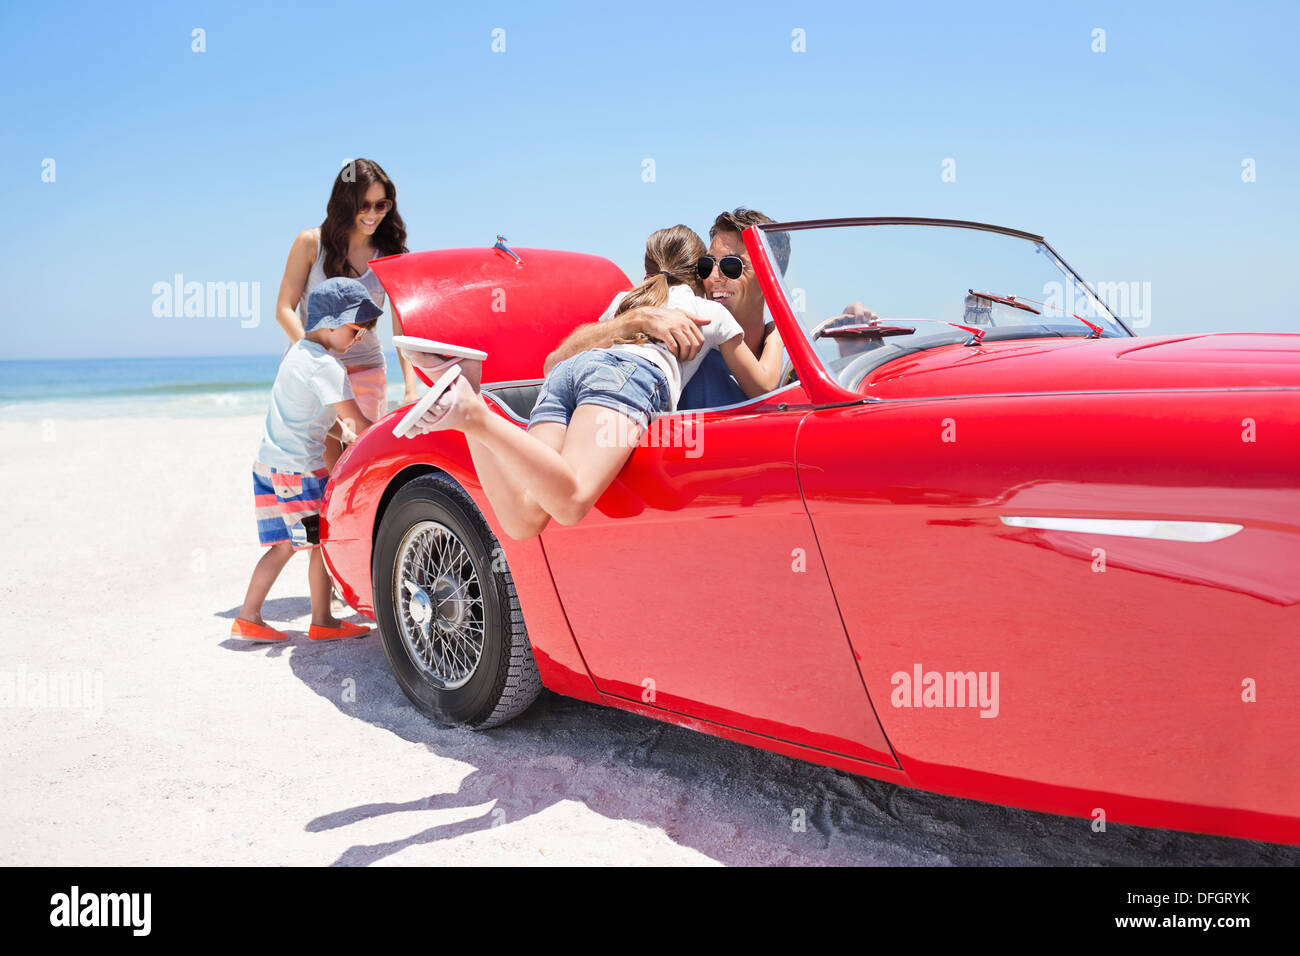 Family packing convertible on beach Stock Photo